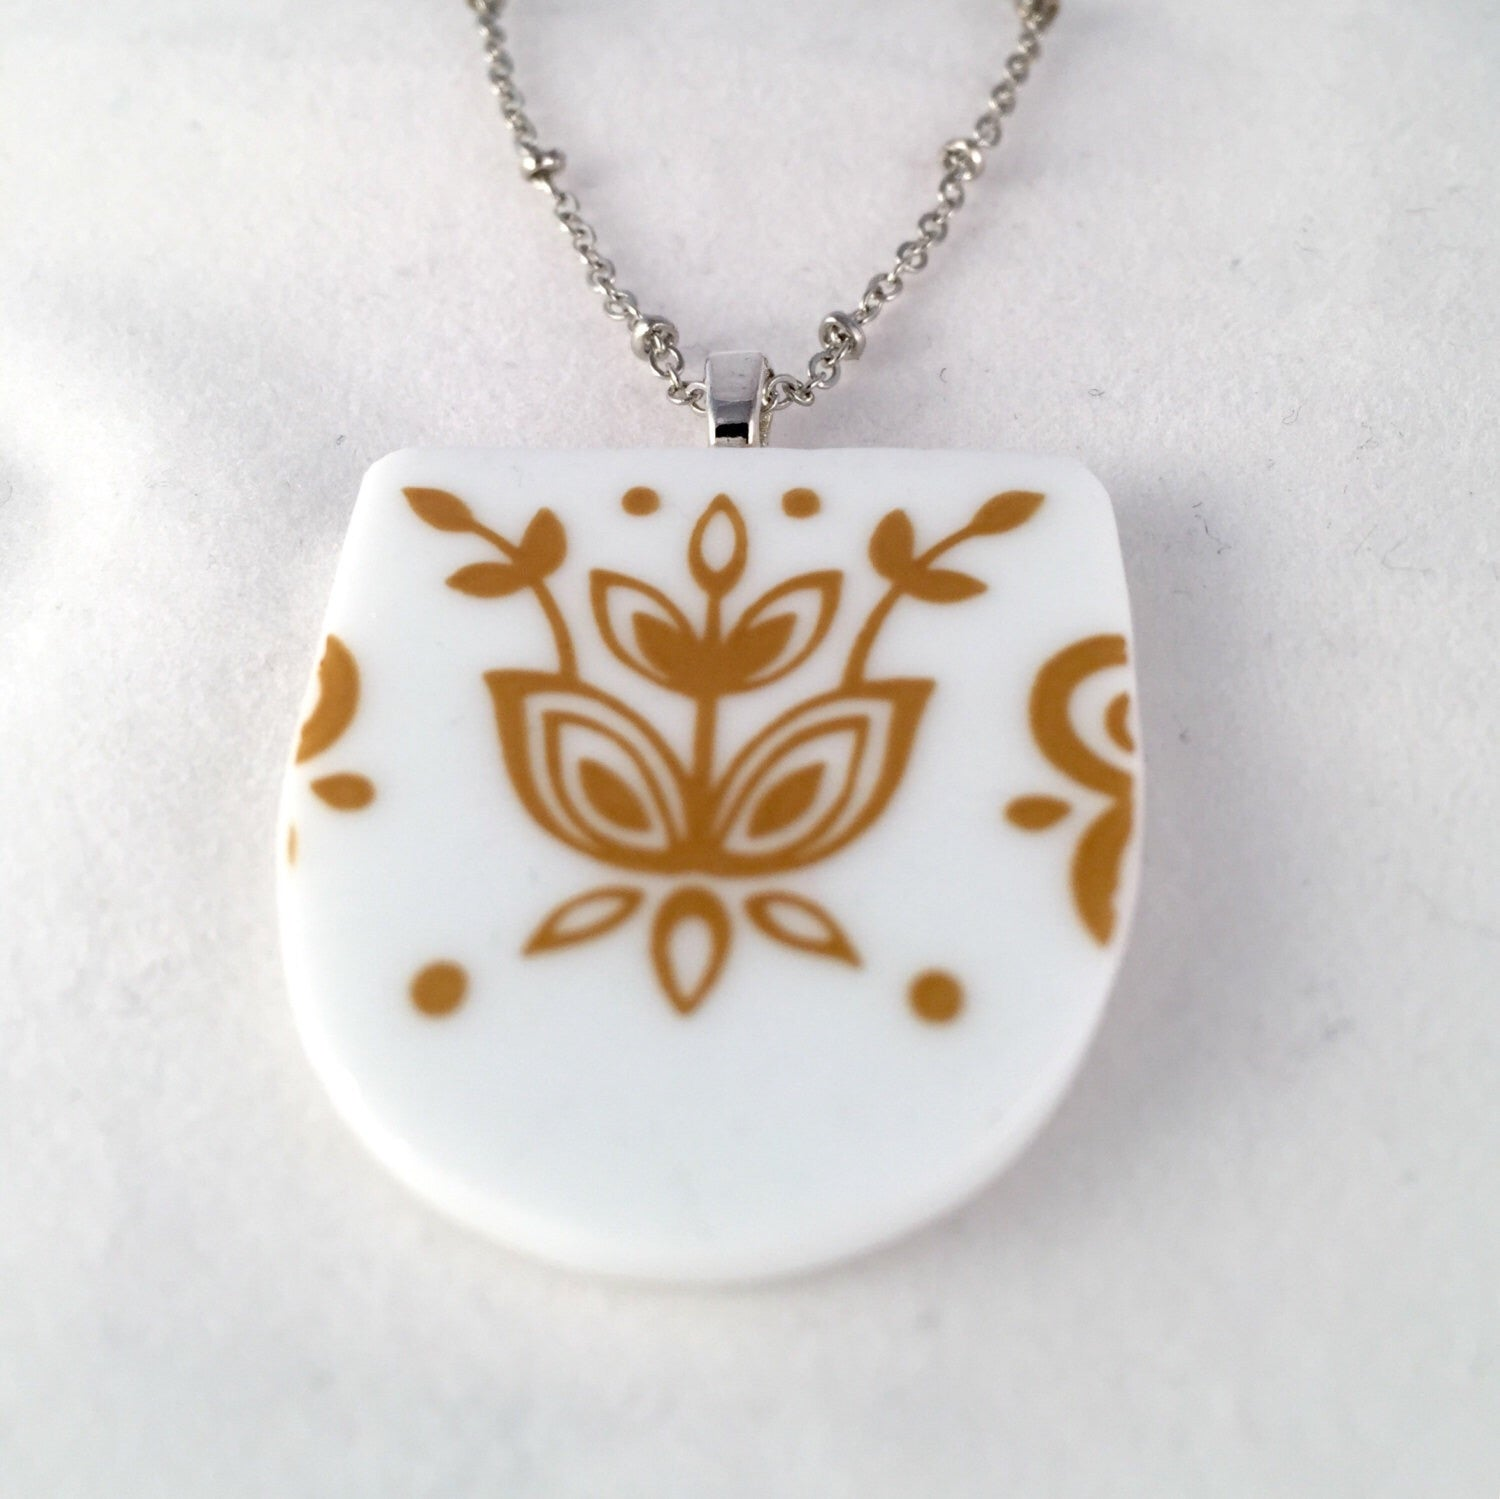 Broken China Jewelry - Corelle Necklace in Butterfly Gold Pattern Close up image